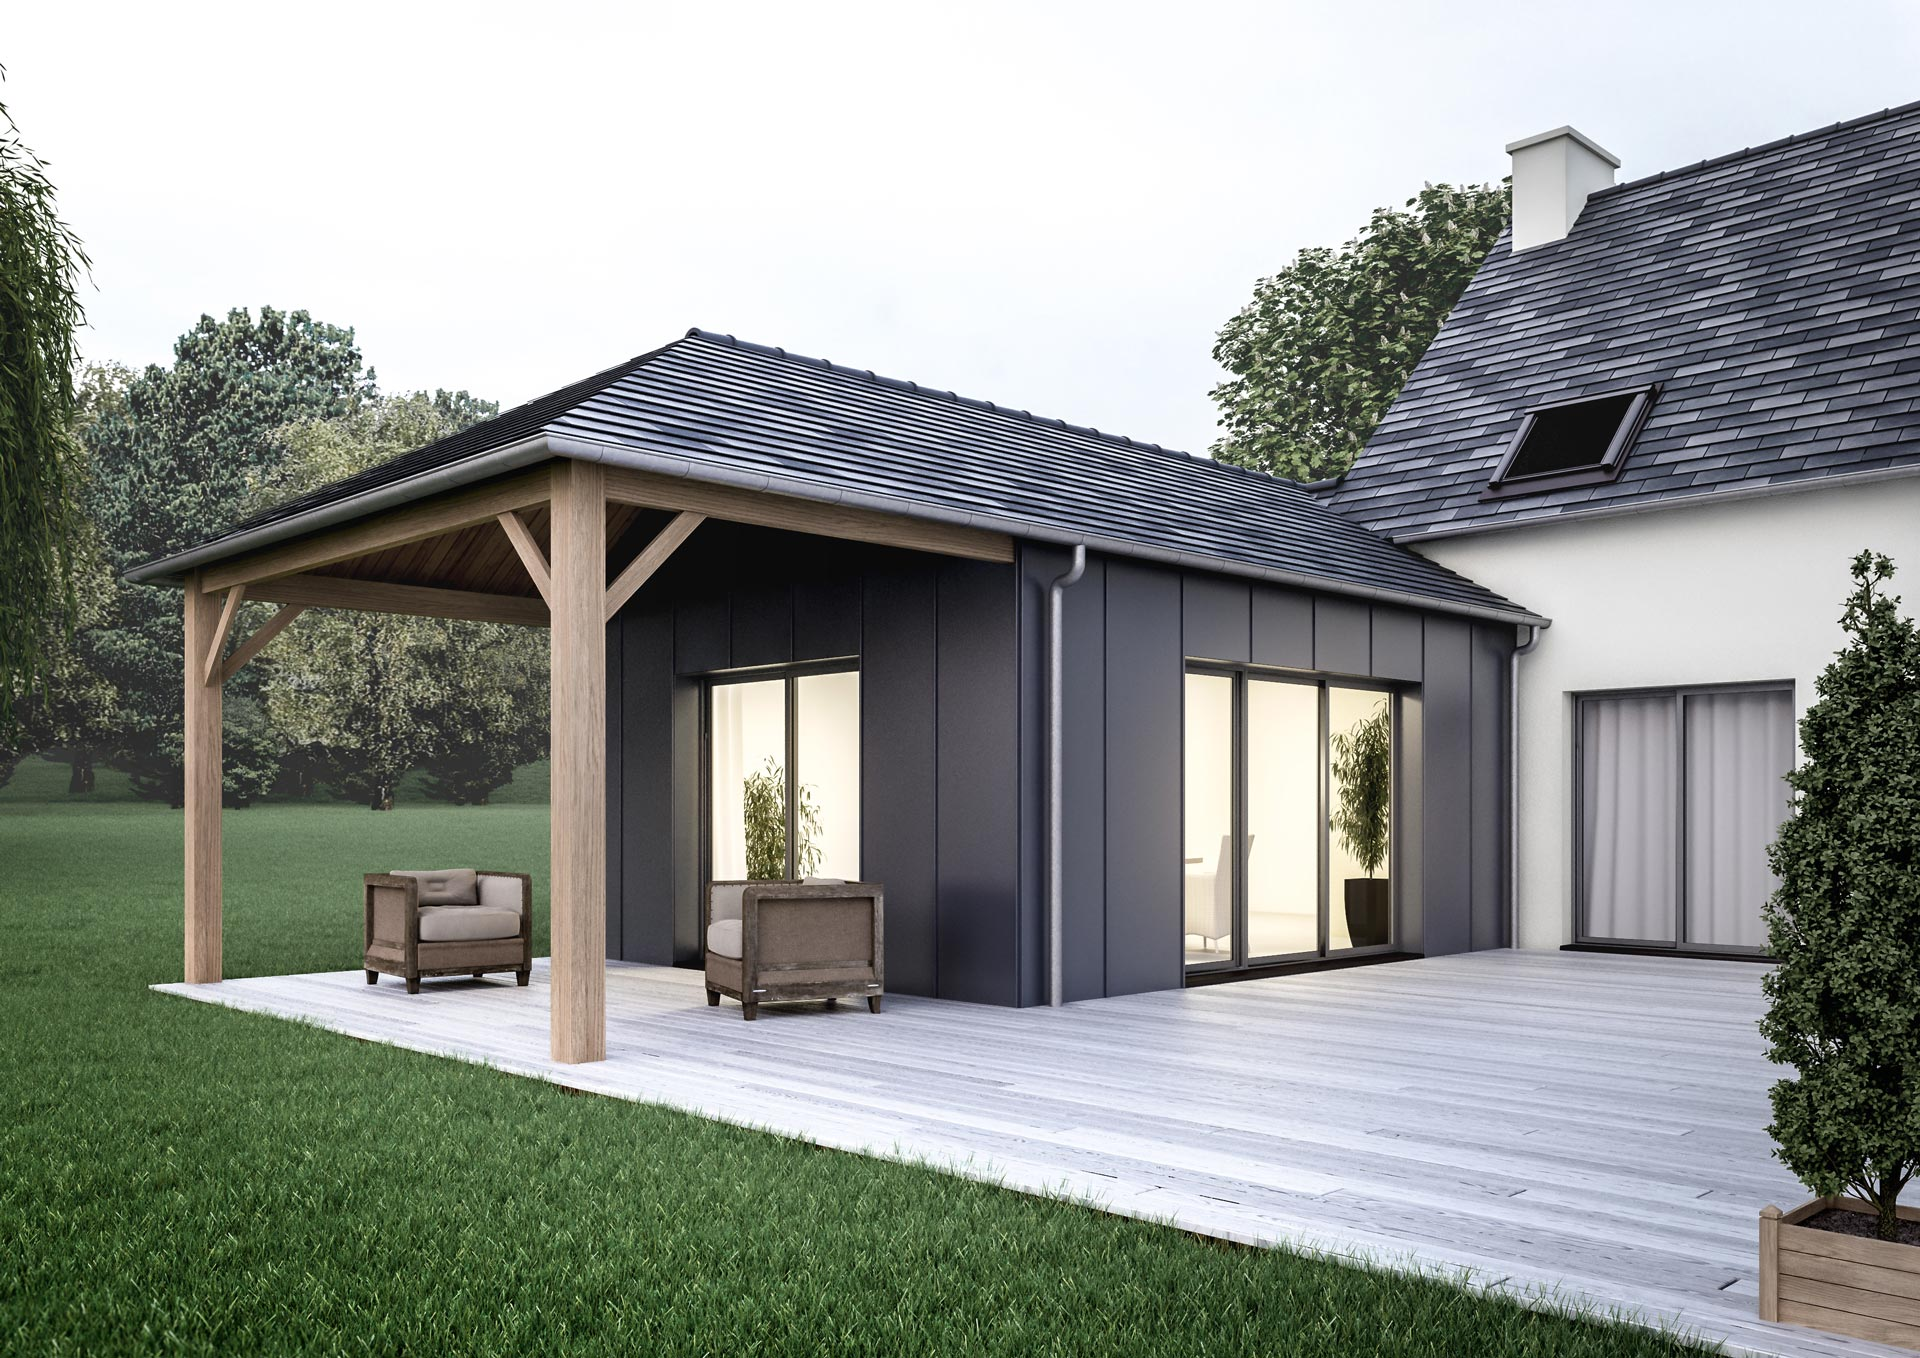 Extension de maison traditionnelle pour agrandir sa maison - Maison contemporaine solar solutions design ...